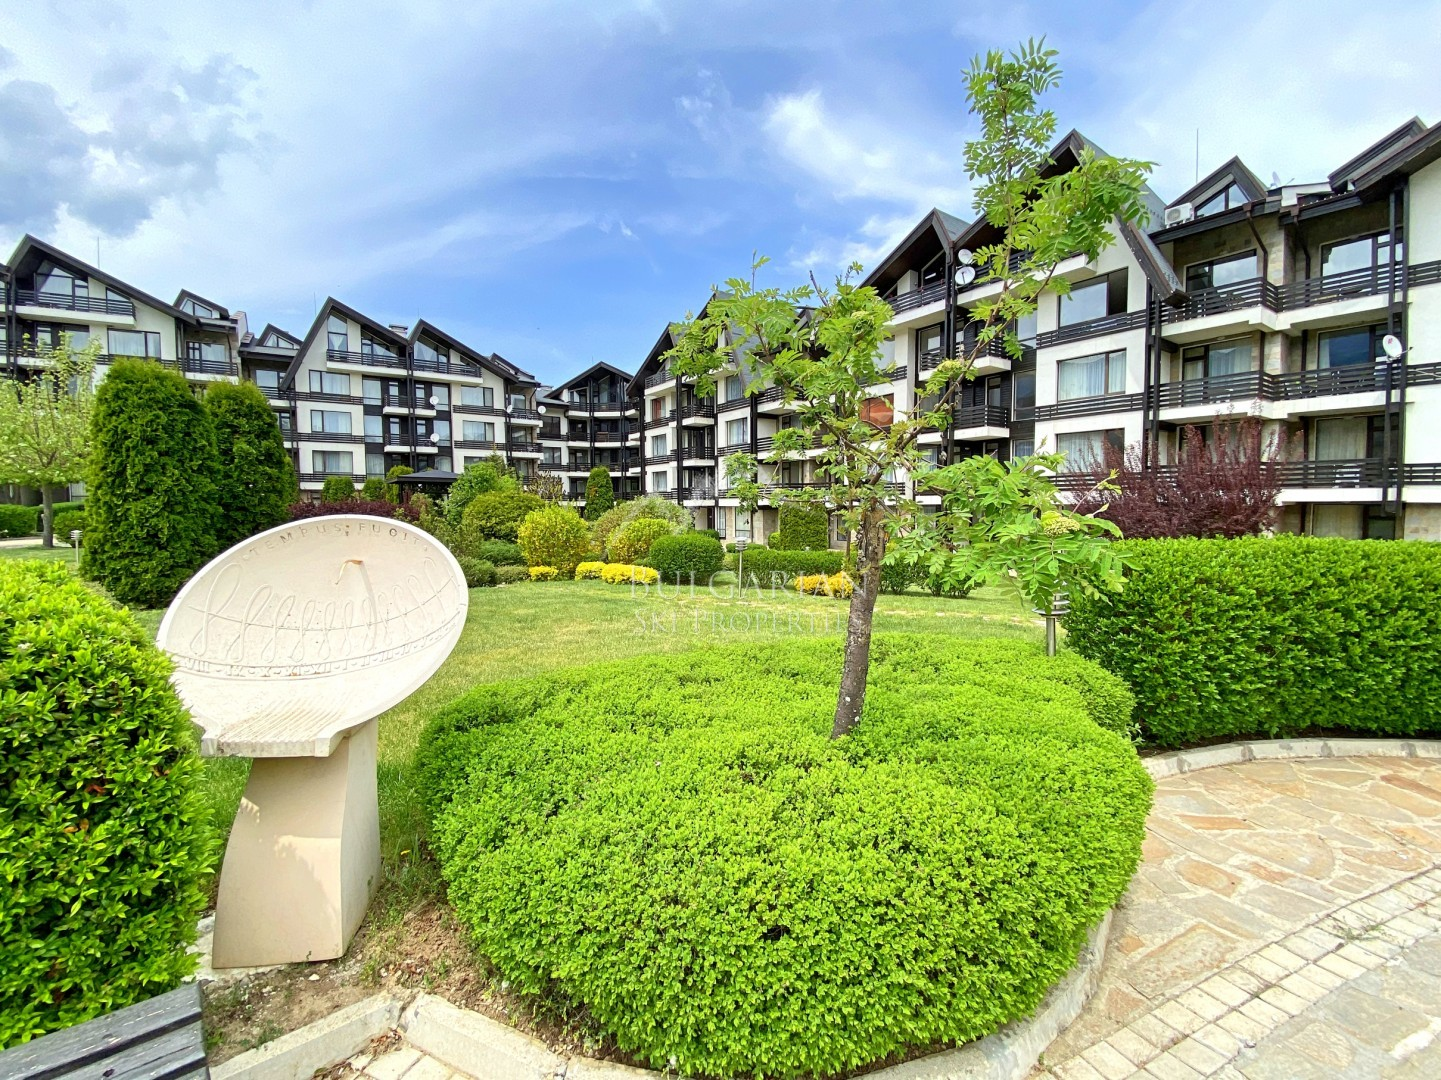 Bansko, Aspen Golf: Two-bedroom apartment for sale with mountain view